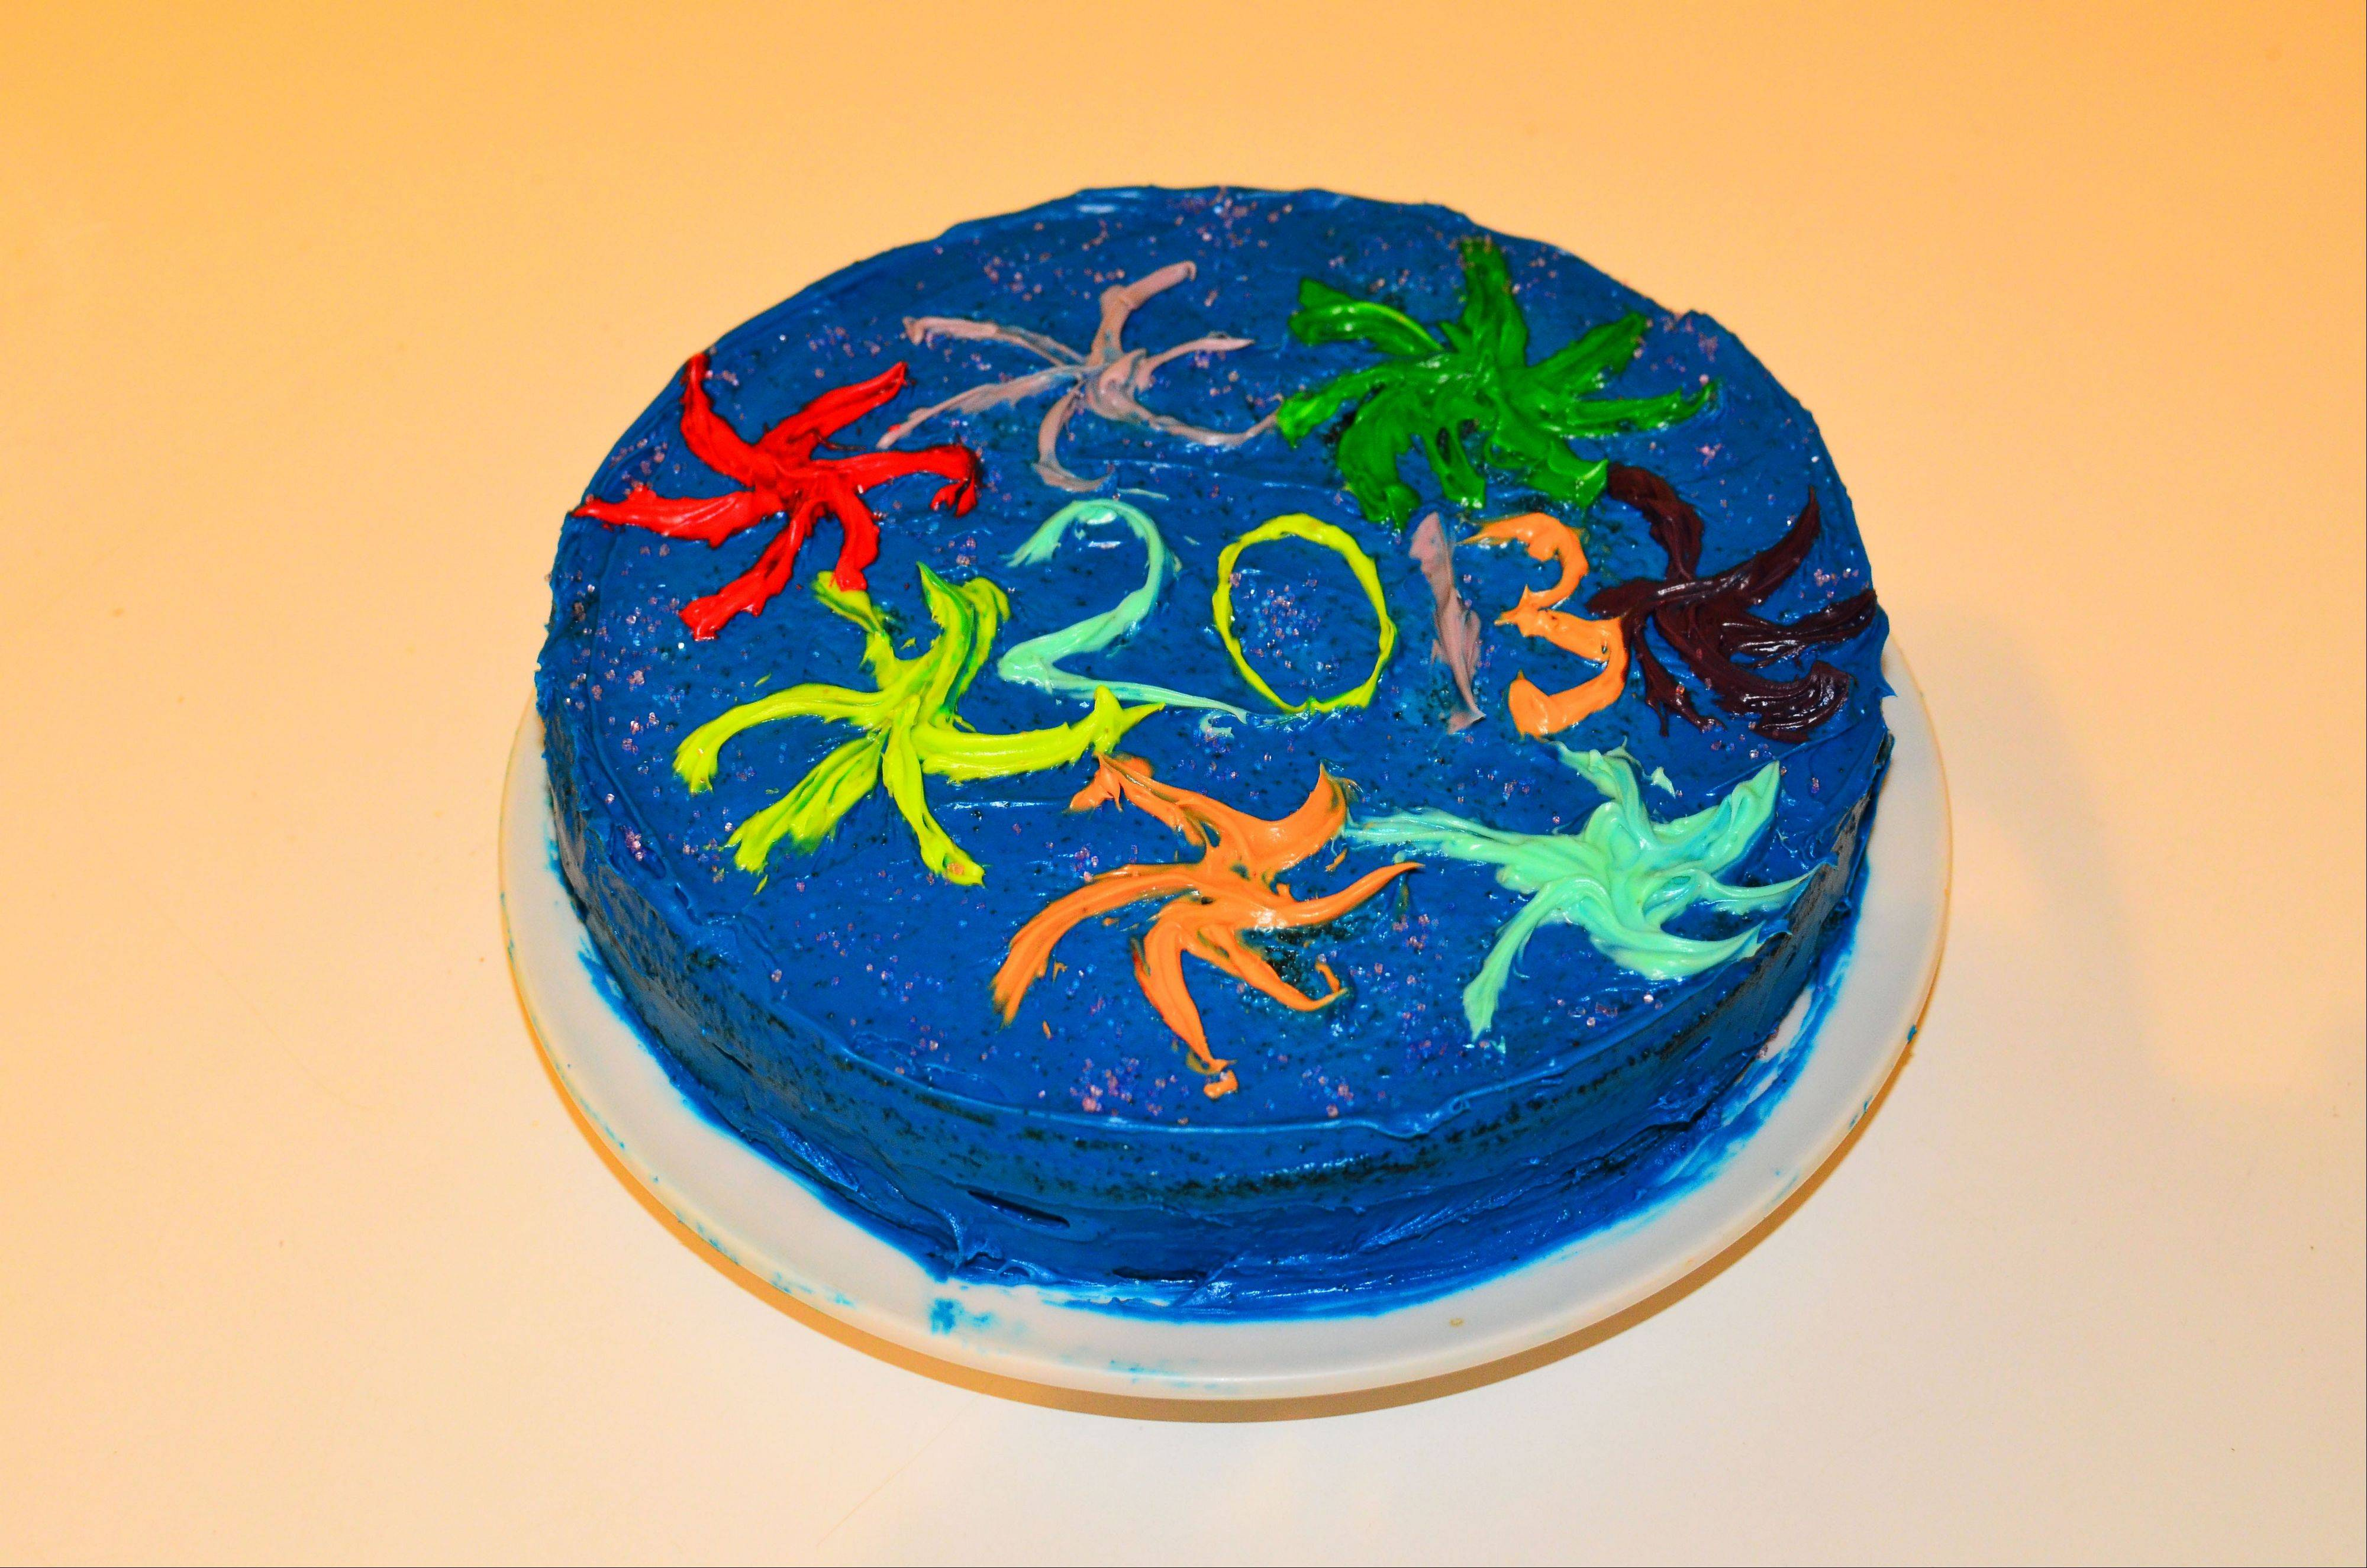 A New Year's cake baked and decorated by Laura Jofre's daughter.